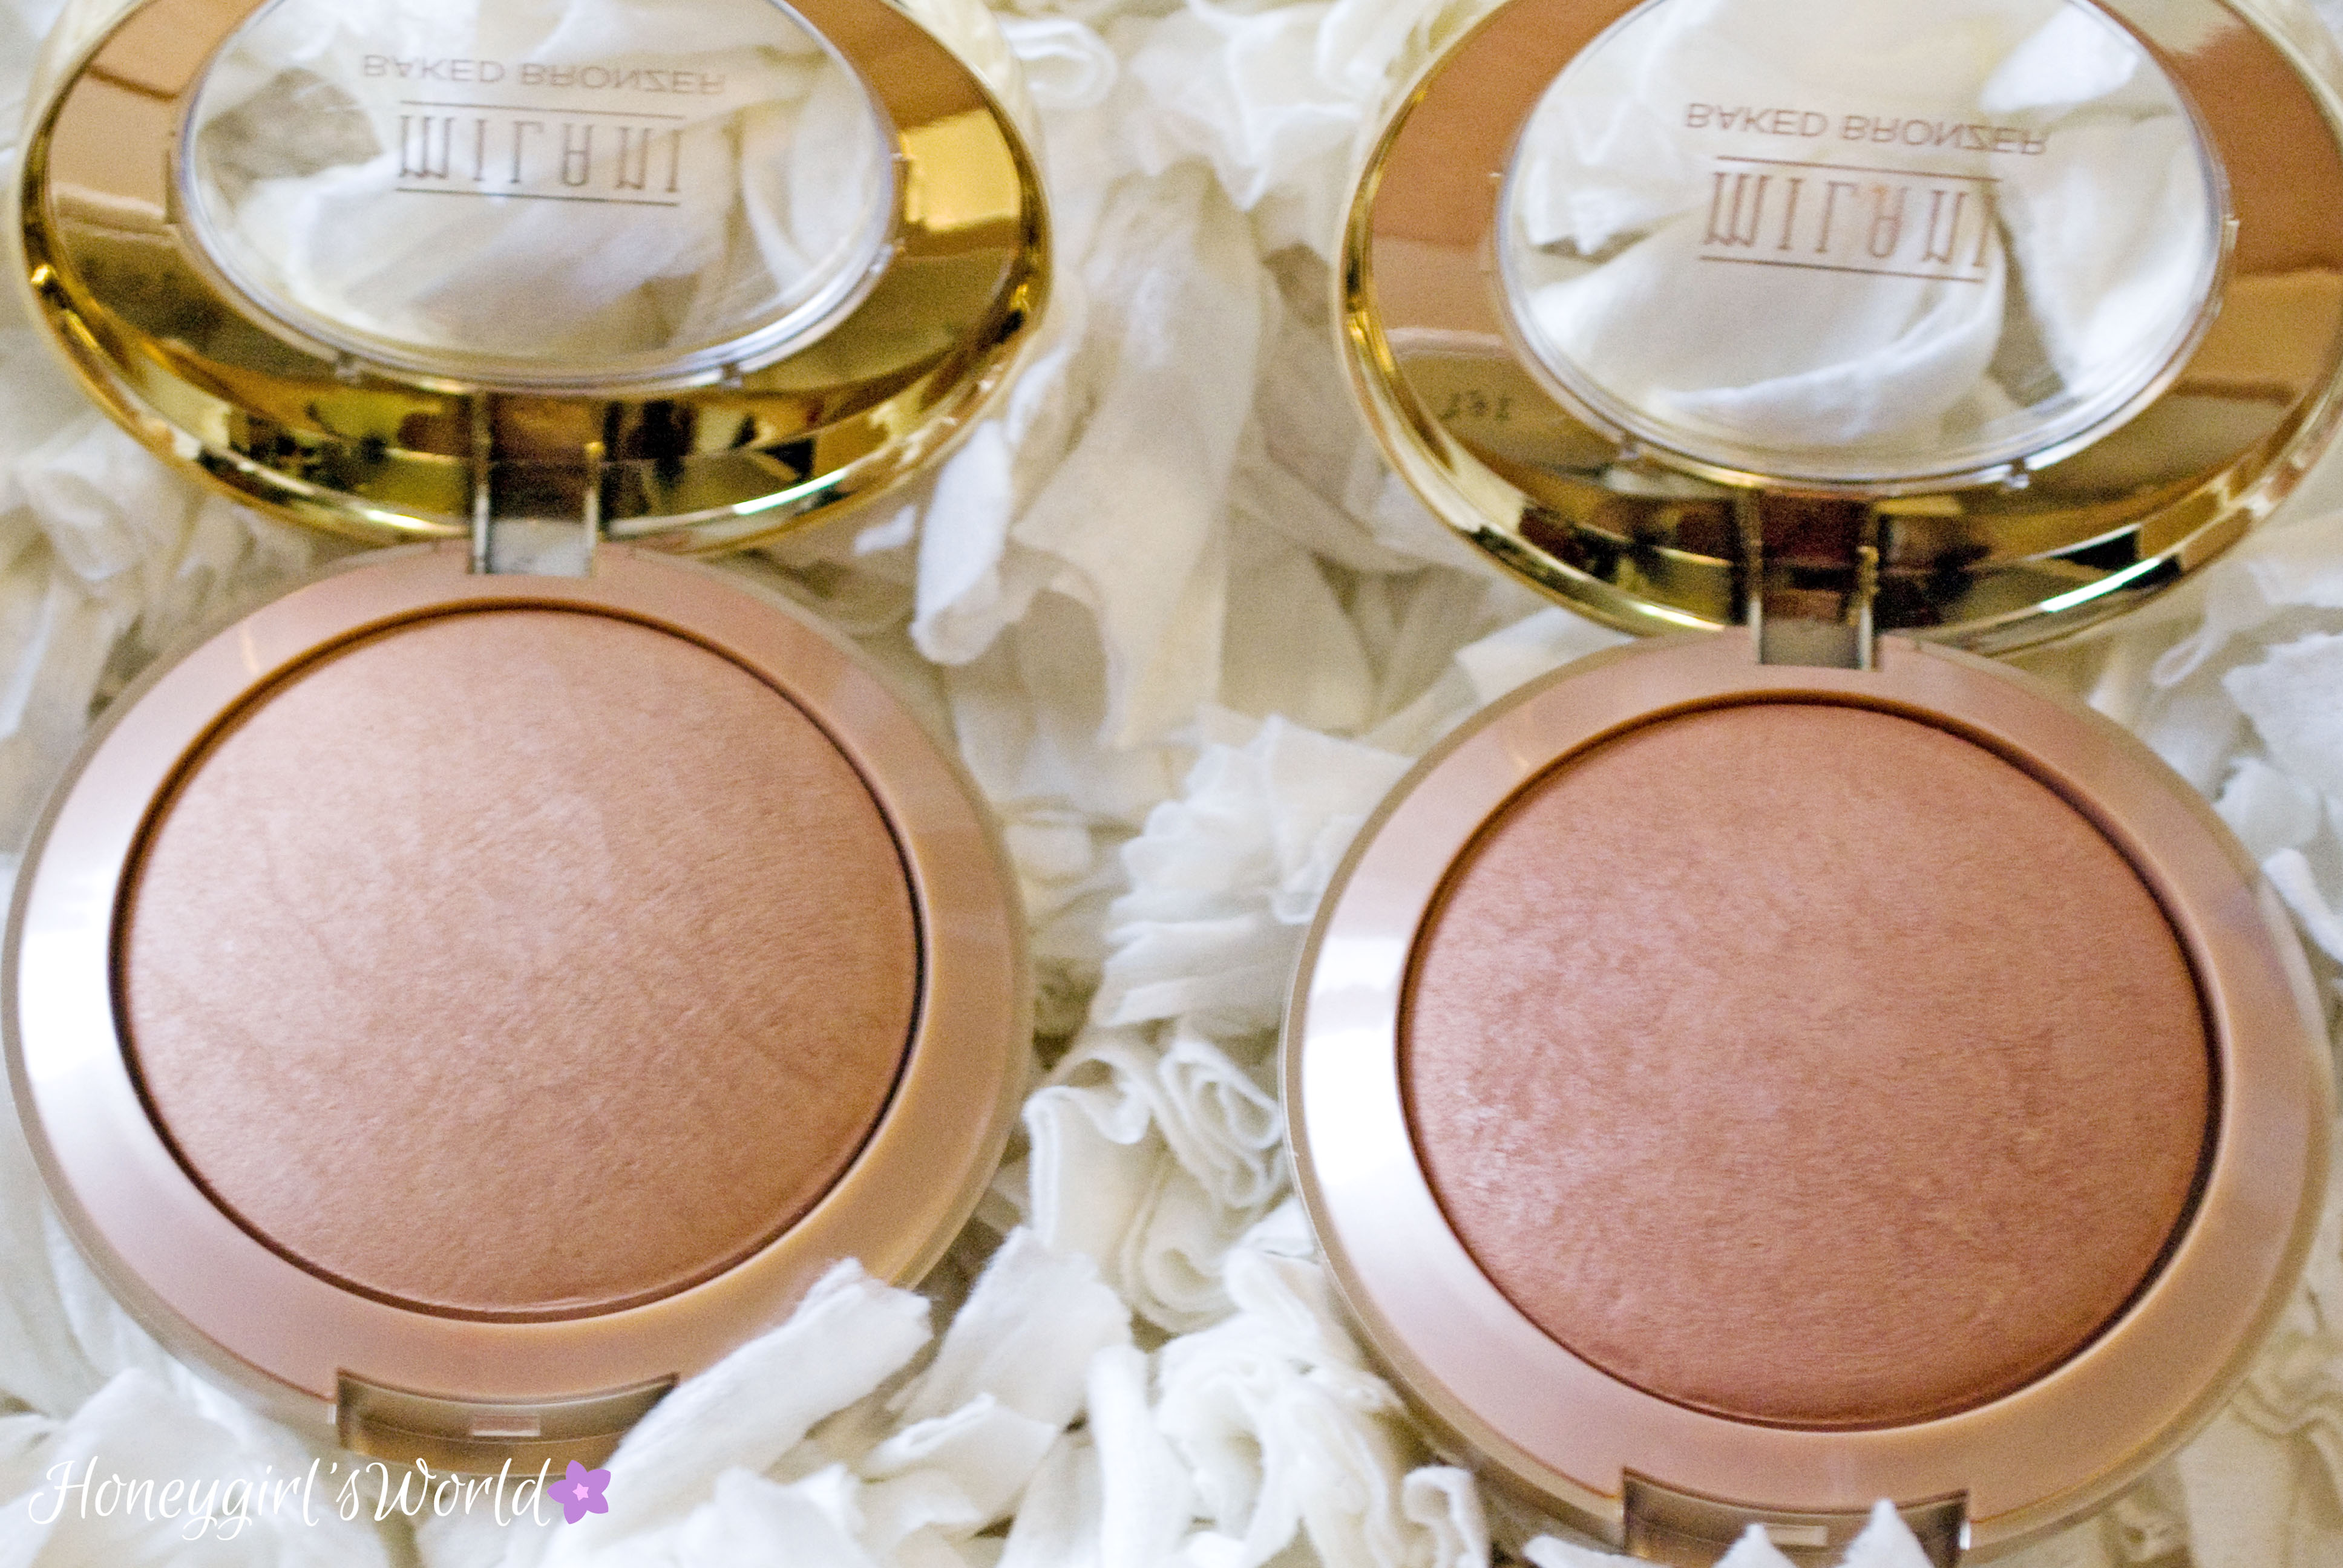 Milani Limited Edition Matte Baked Bronzers